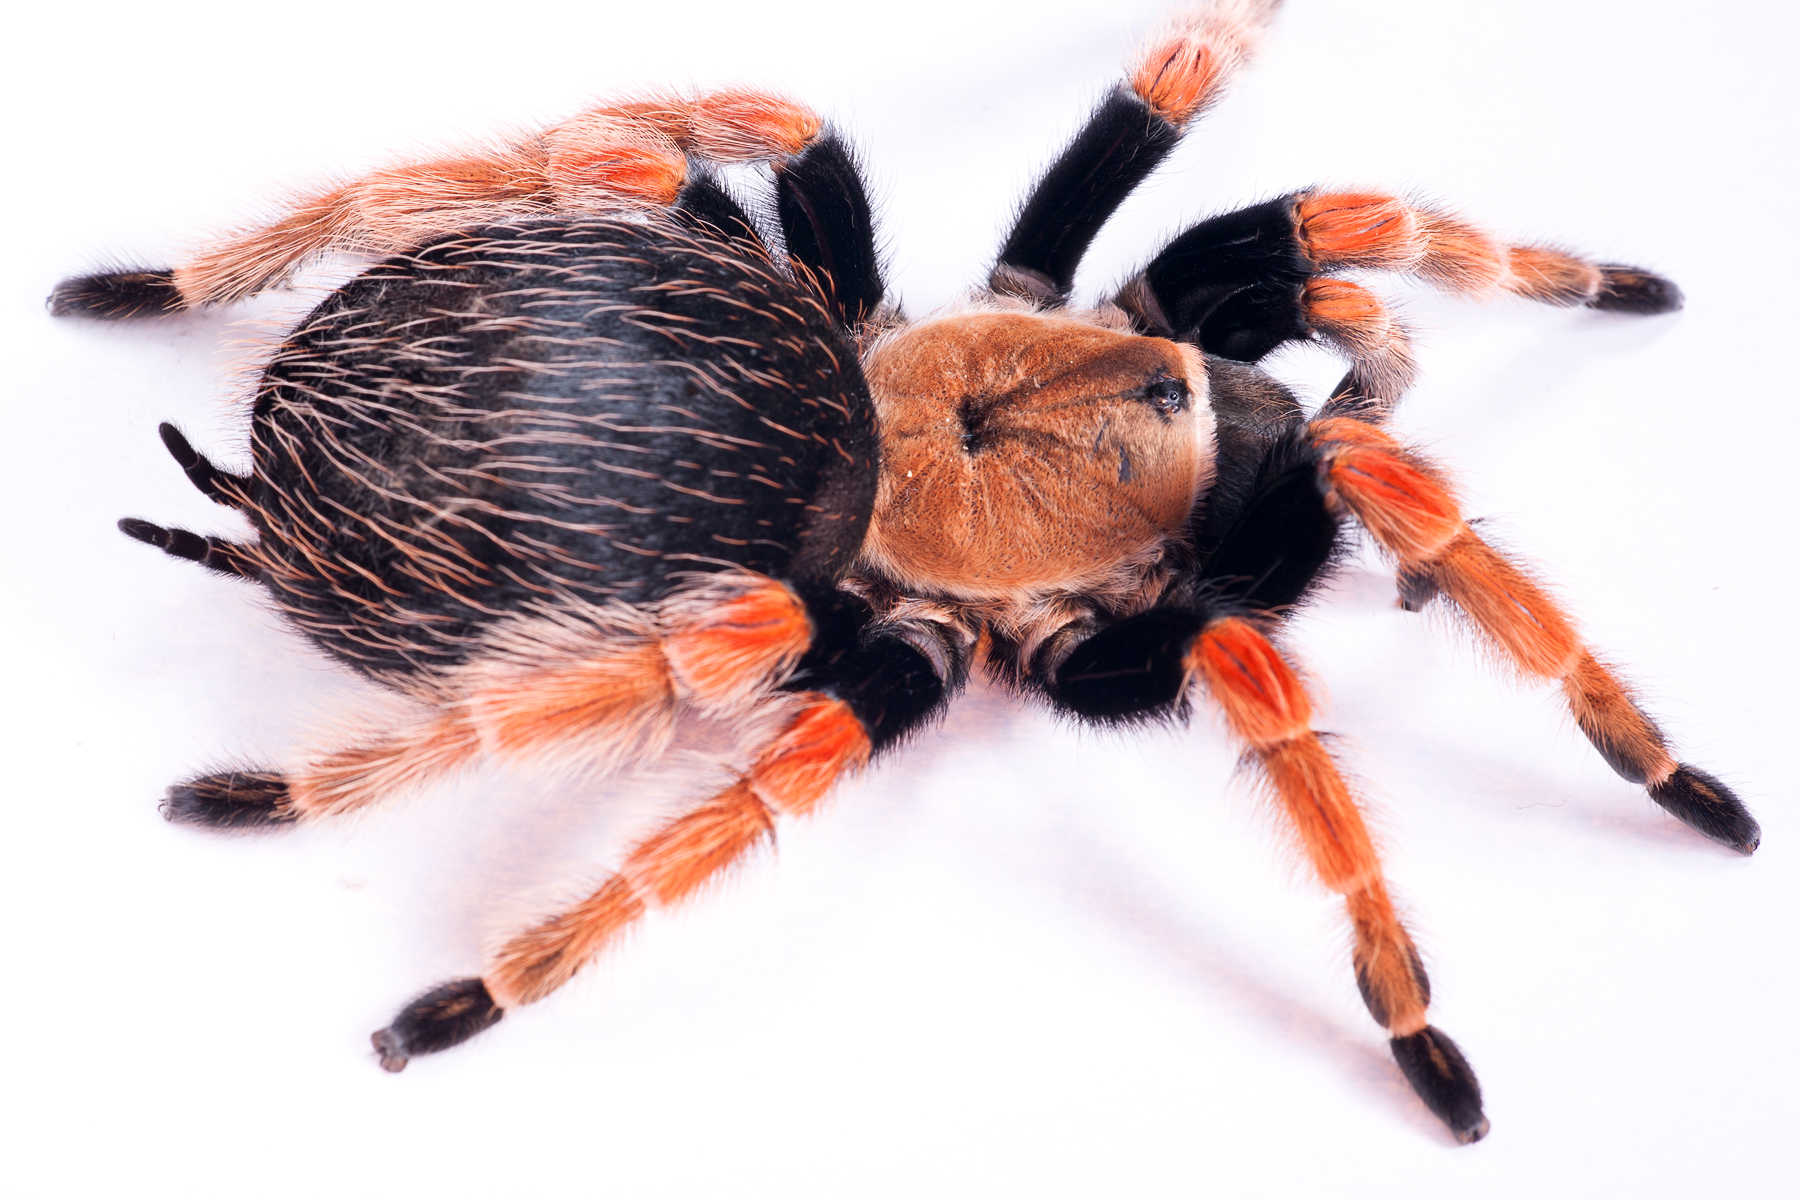 Large Hairy Spider, Scary, Natural, Nature, One, HQ Photo